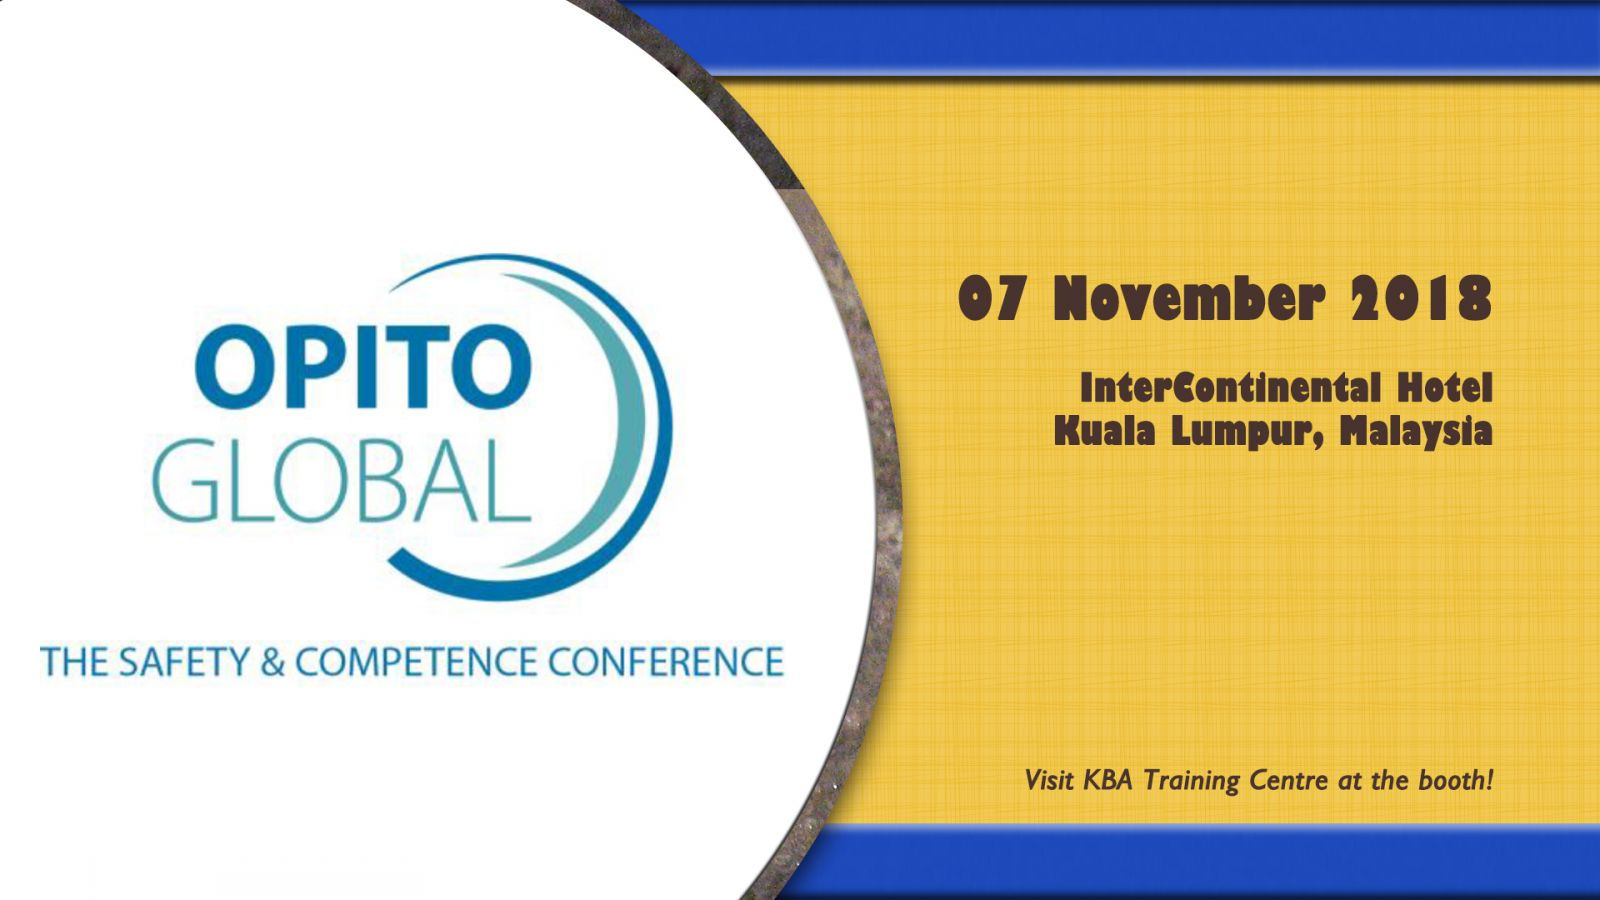 OPITO Global 20`8 - The Safety & Competence Conference